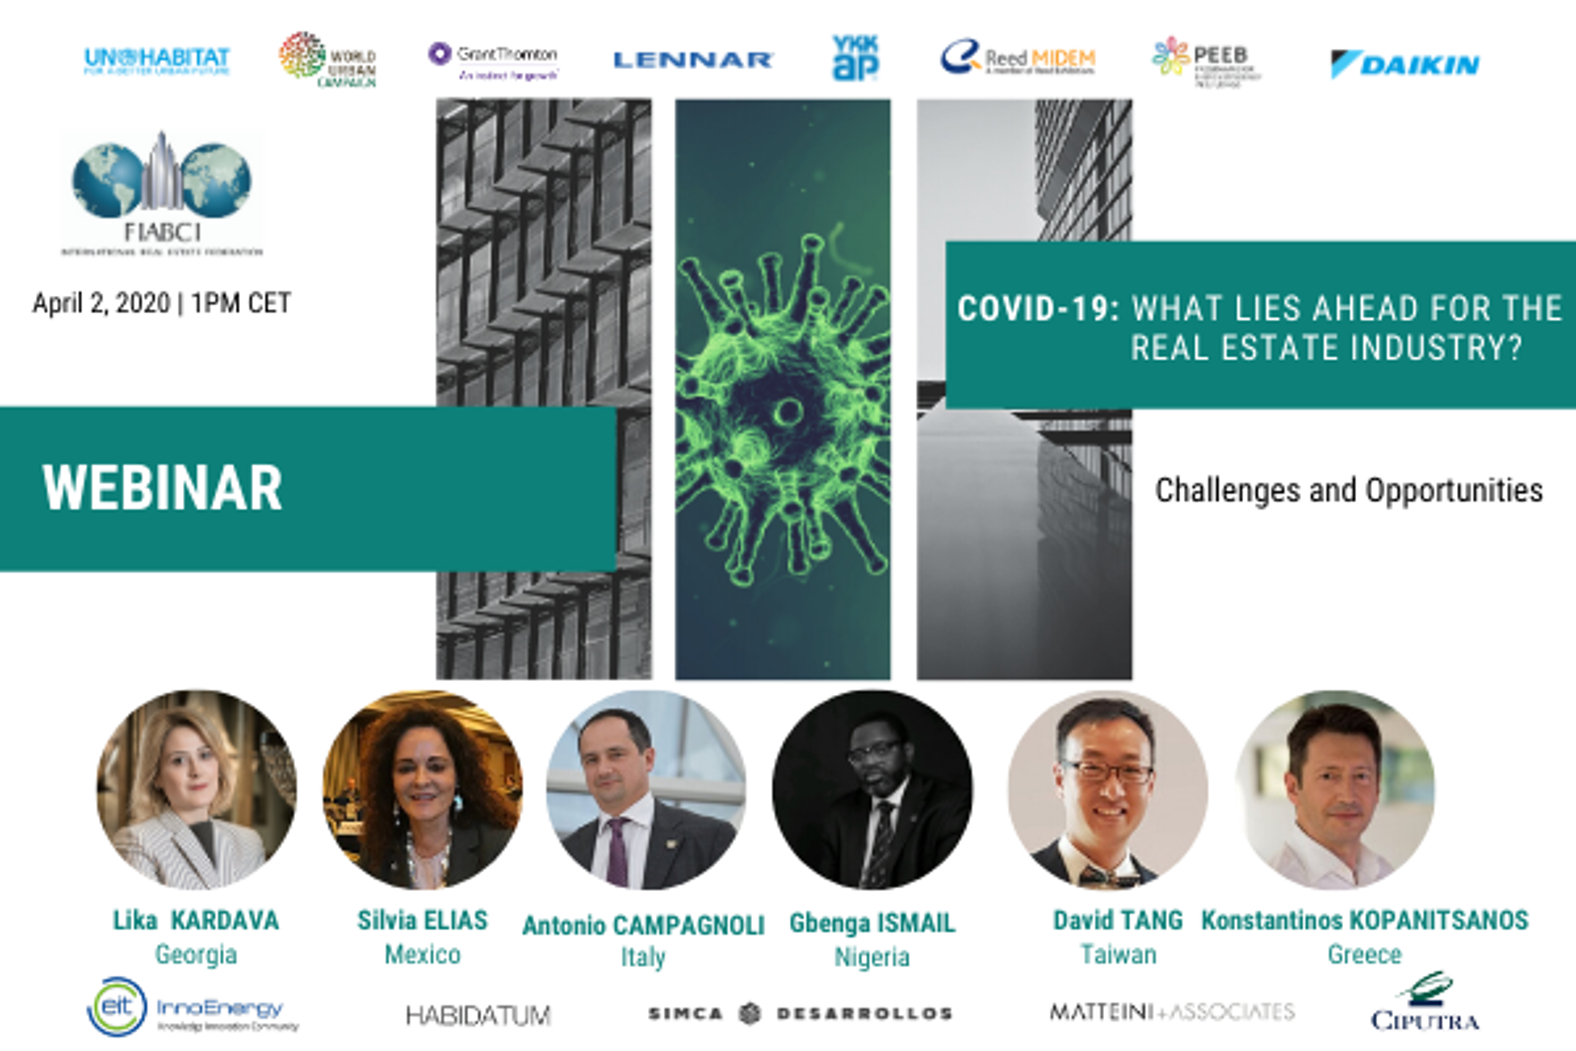 [Webinar Summary] COVID-19: What lies ahead for the Real Estate Industry?